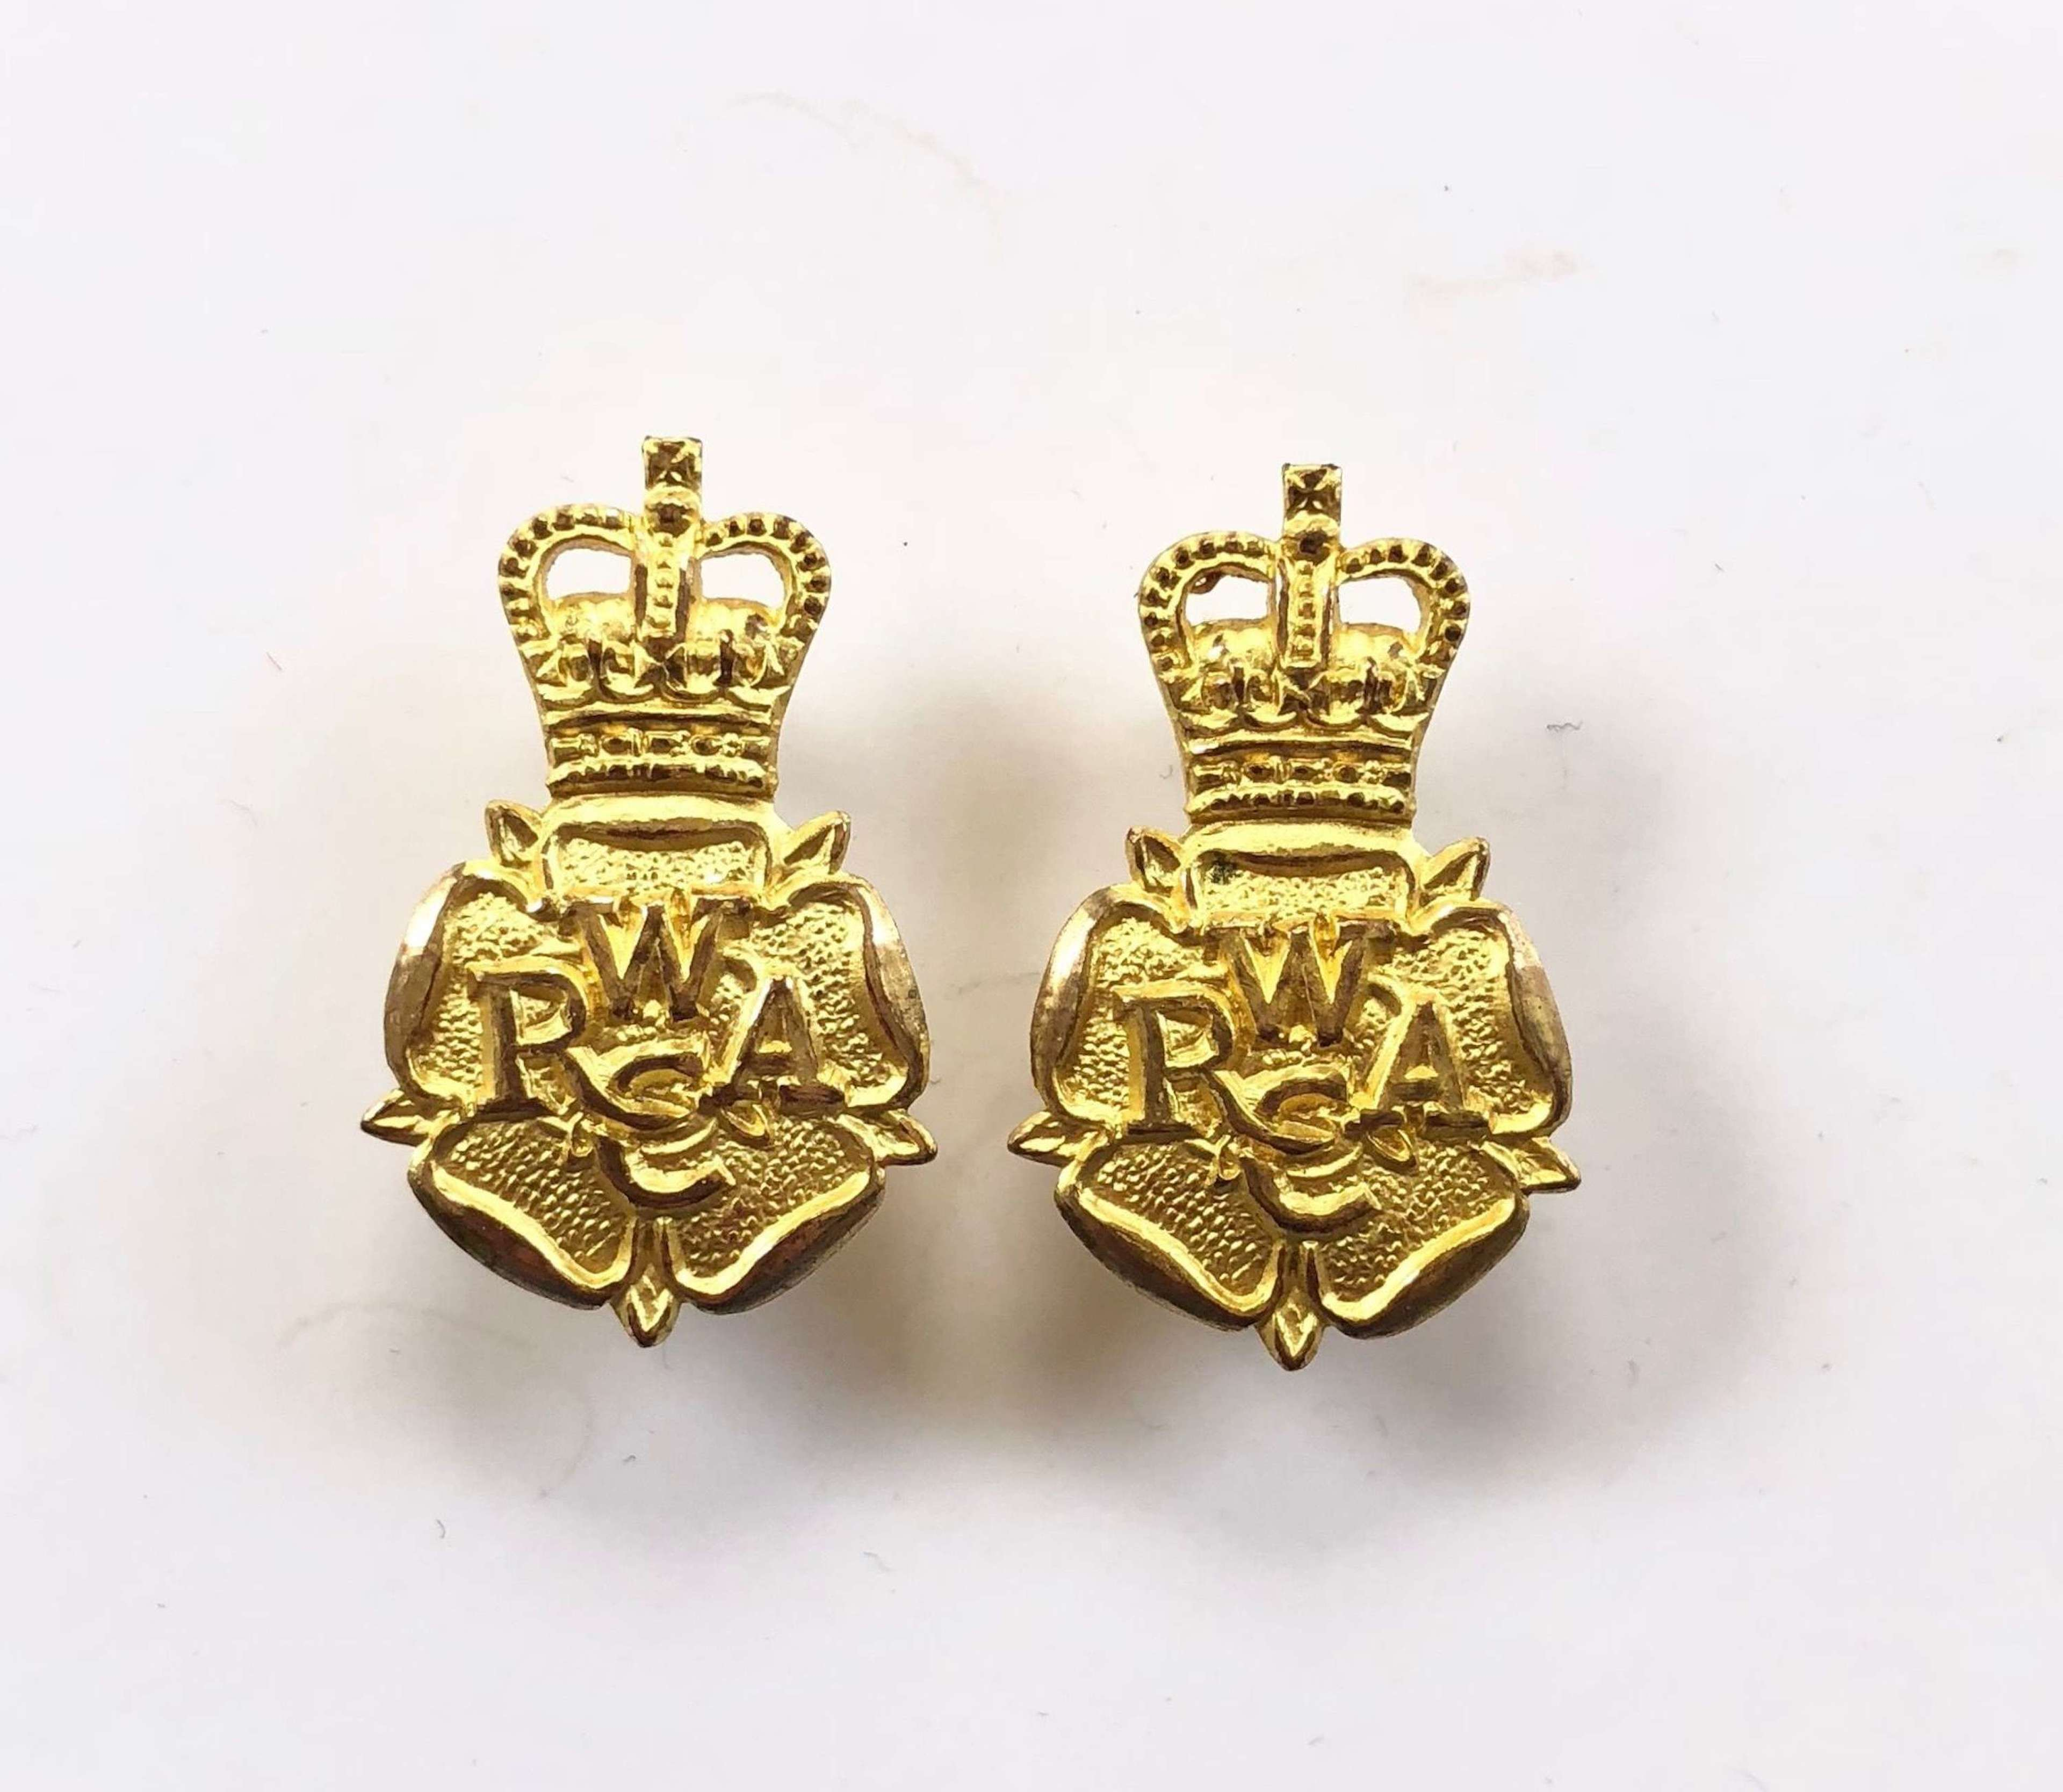 Women's Royal Army Corps  Officers Collar Badges